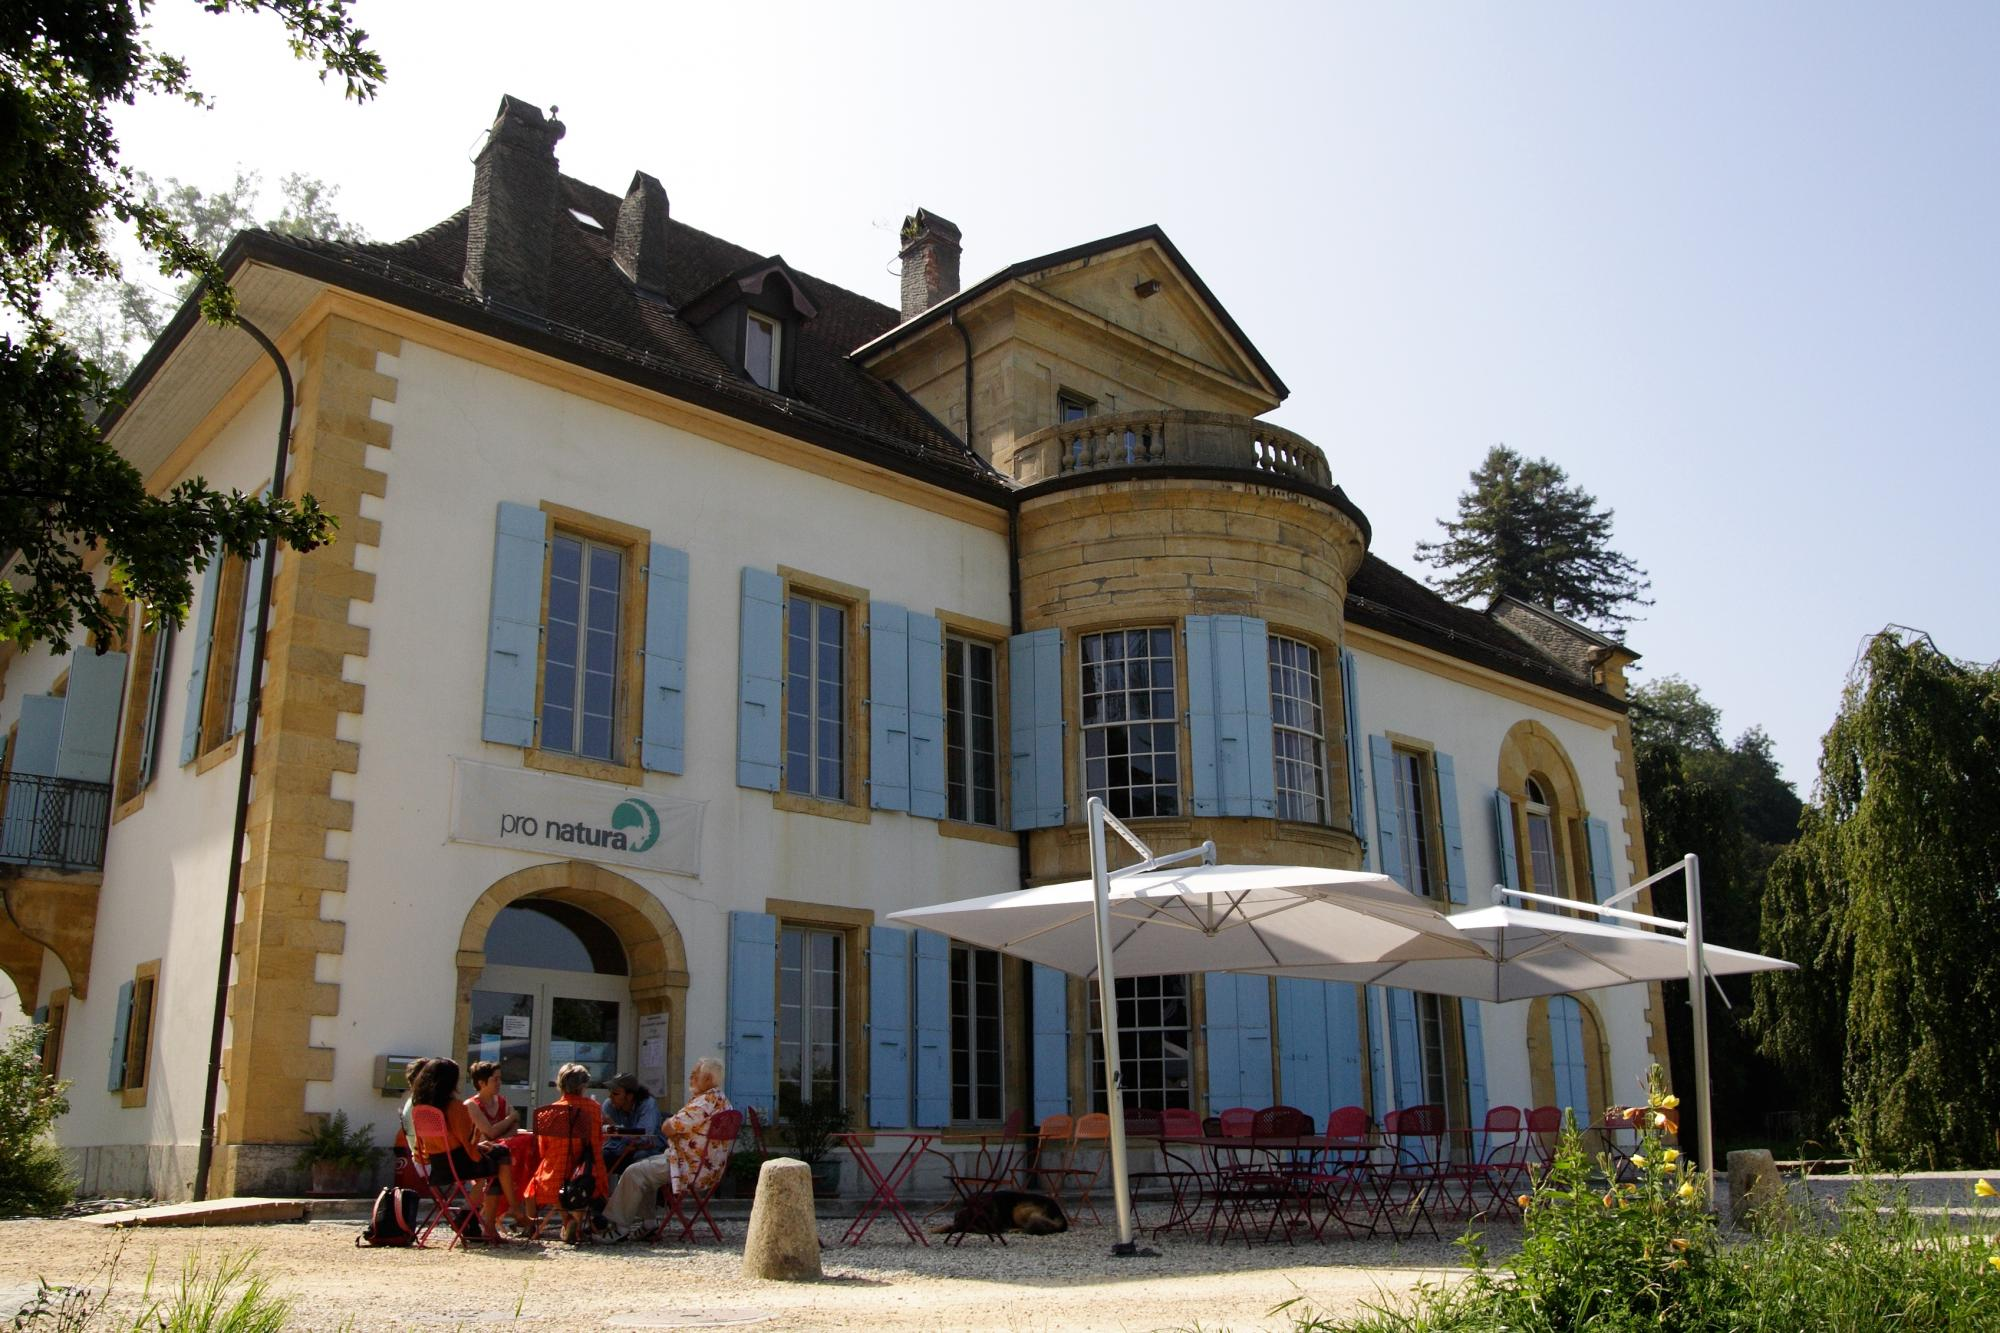 Chateau de Champ-Pittet